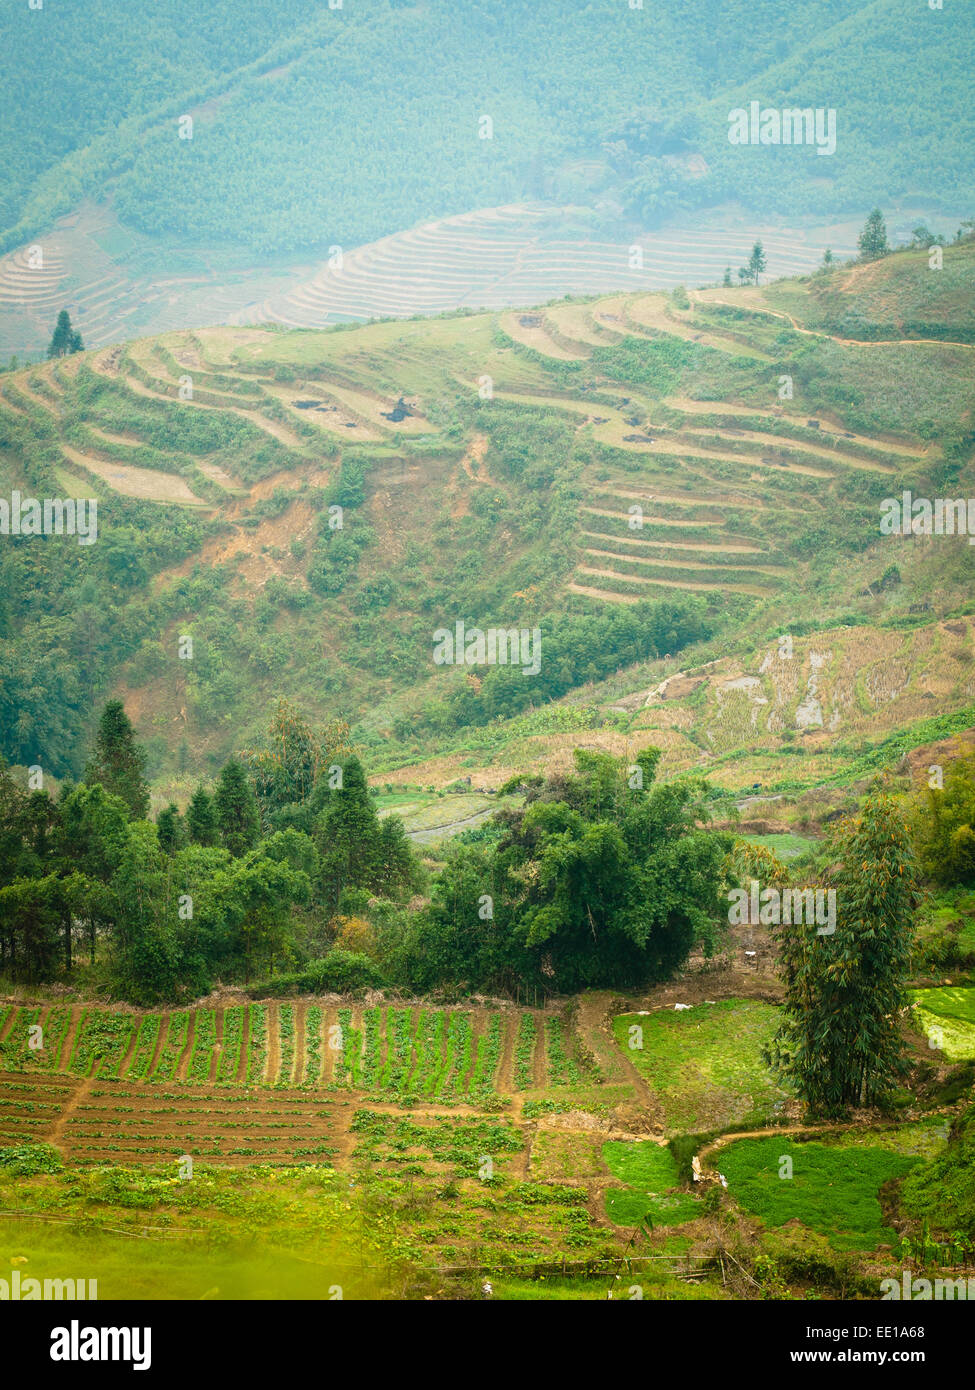 A view of fields and terraced rice paddies just outside of Sapa, Vietnam. - Stock Image